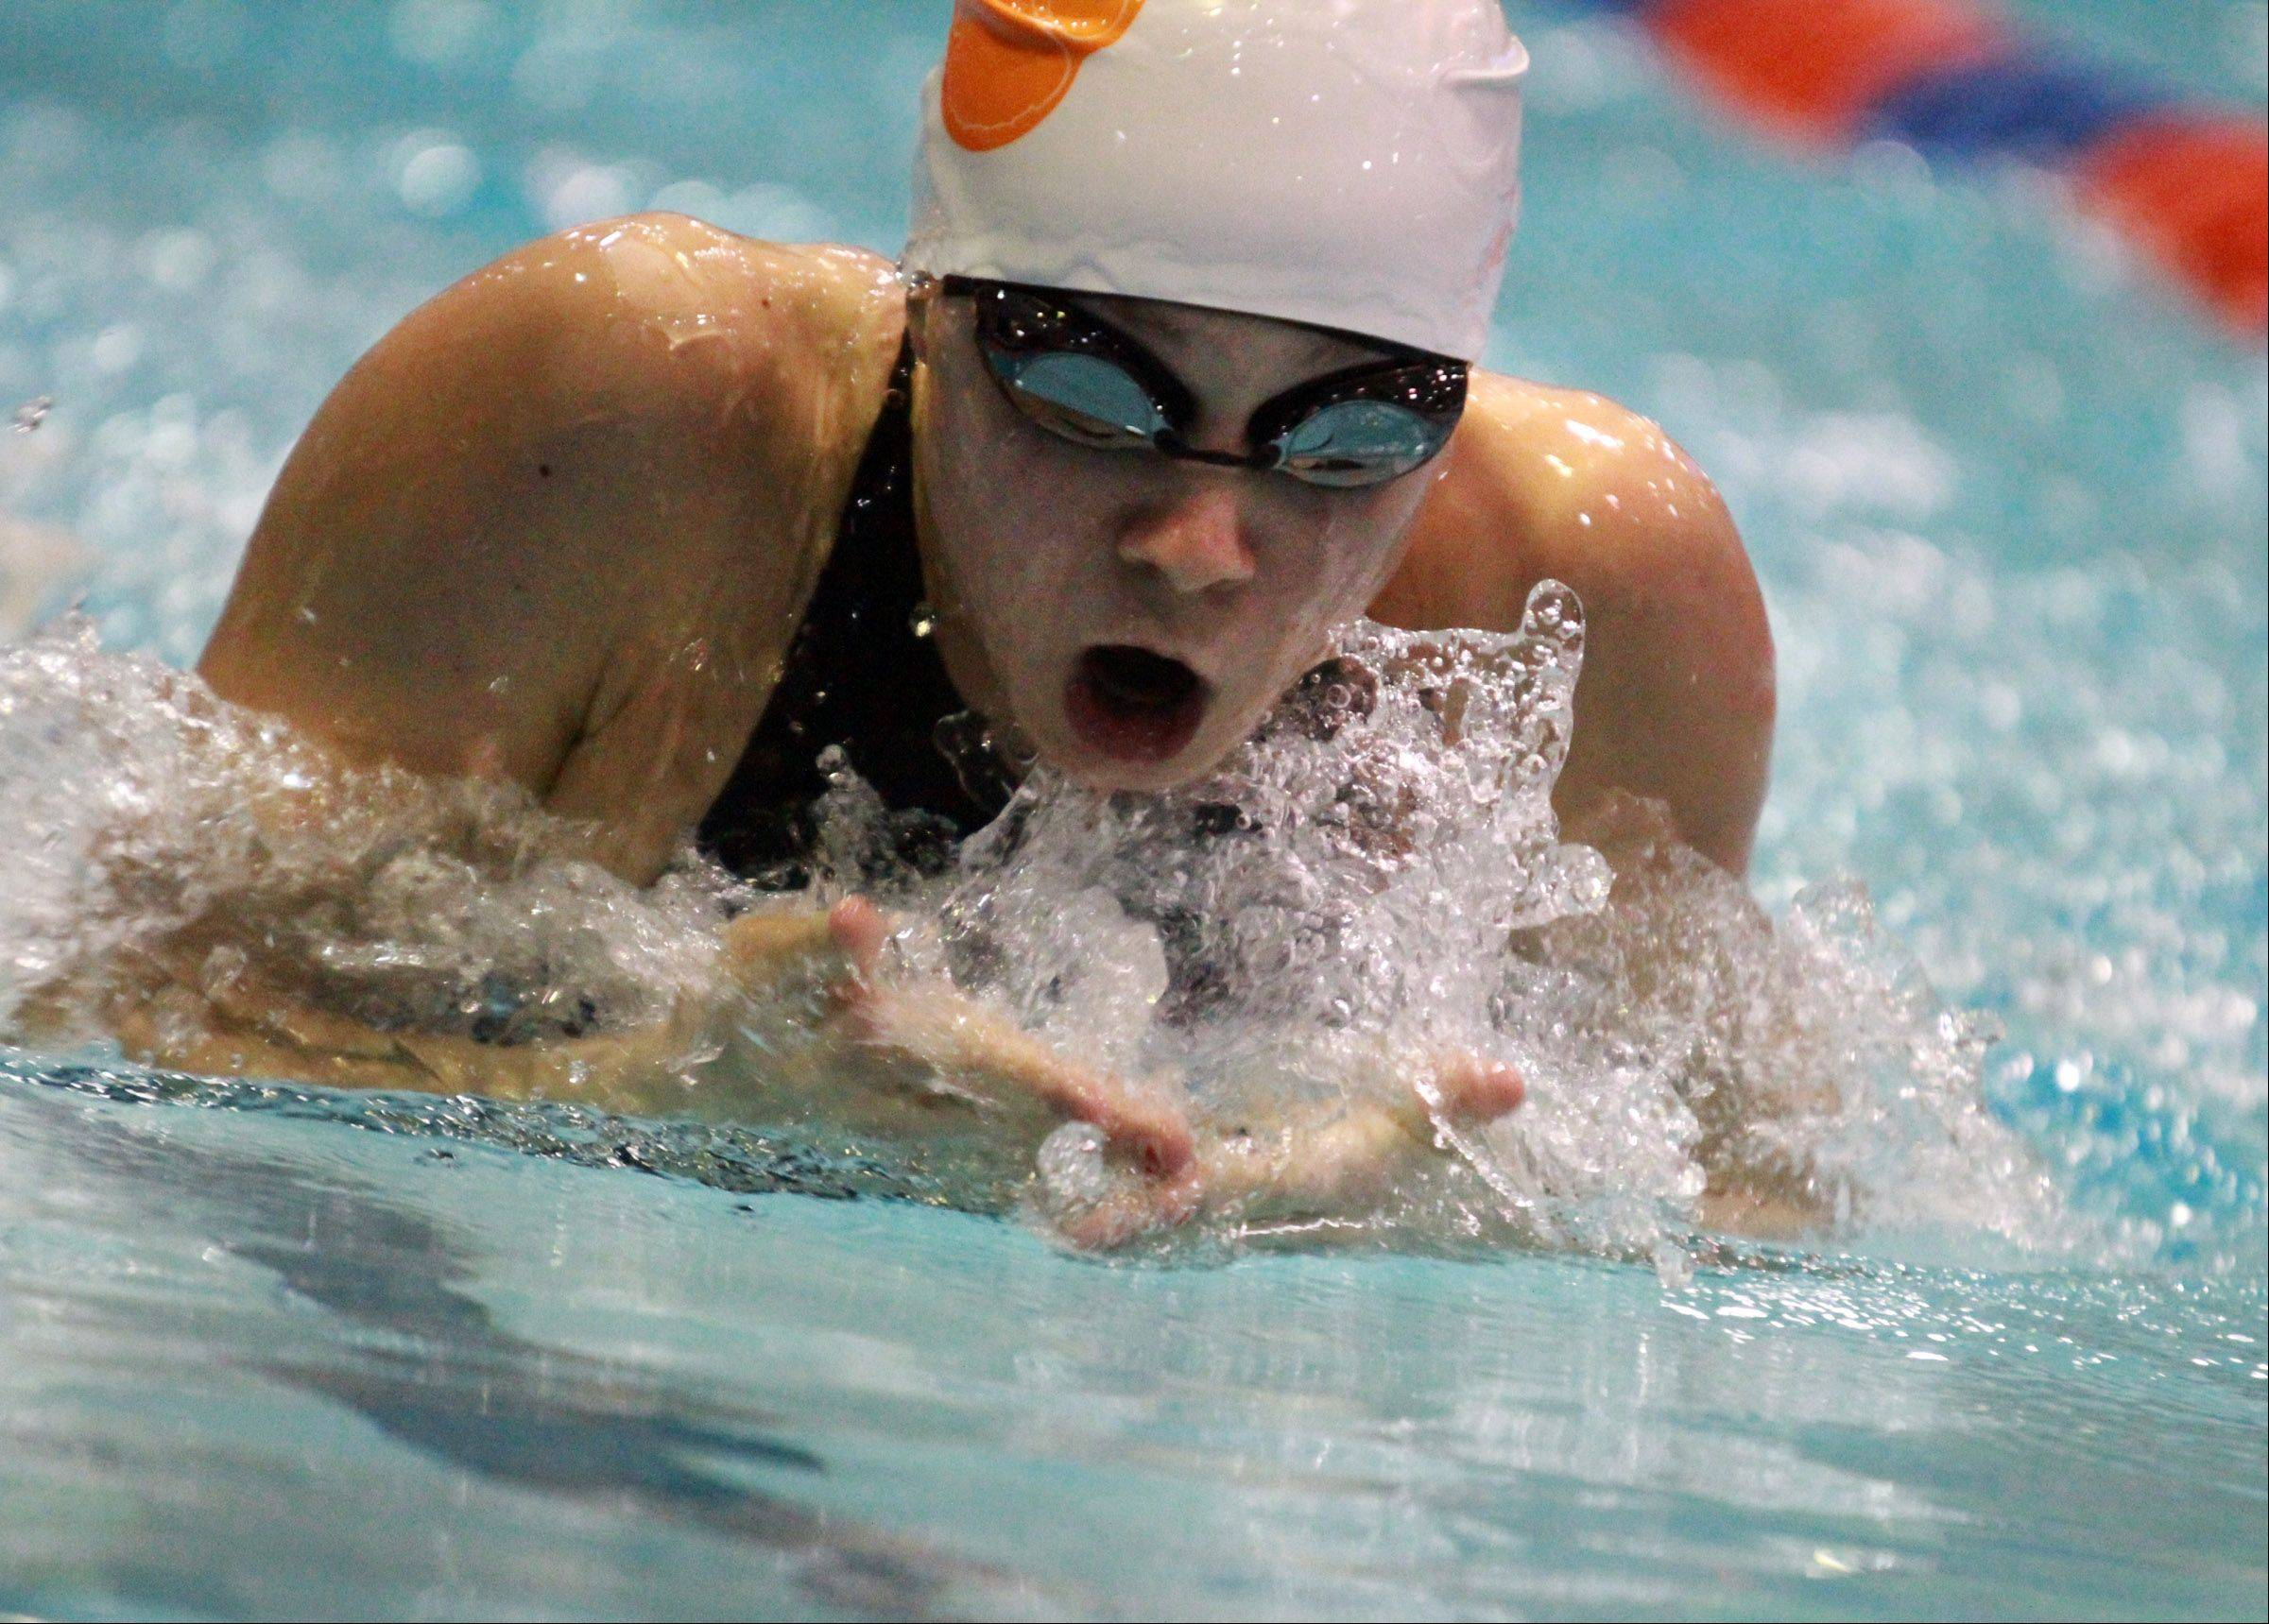 Macey Neubauer of Libertyville swims the 100-yard breaststroke in the state meet preliminaries in Evanston on Friday.